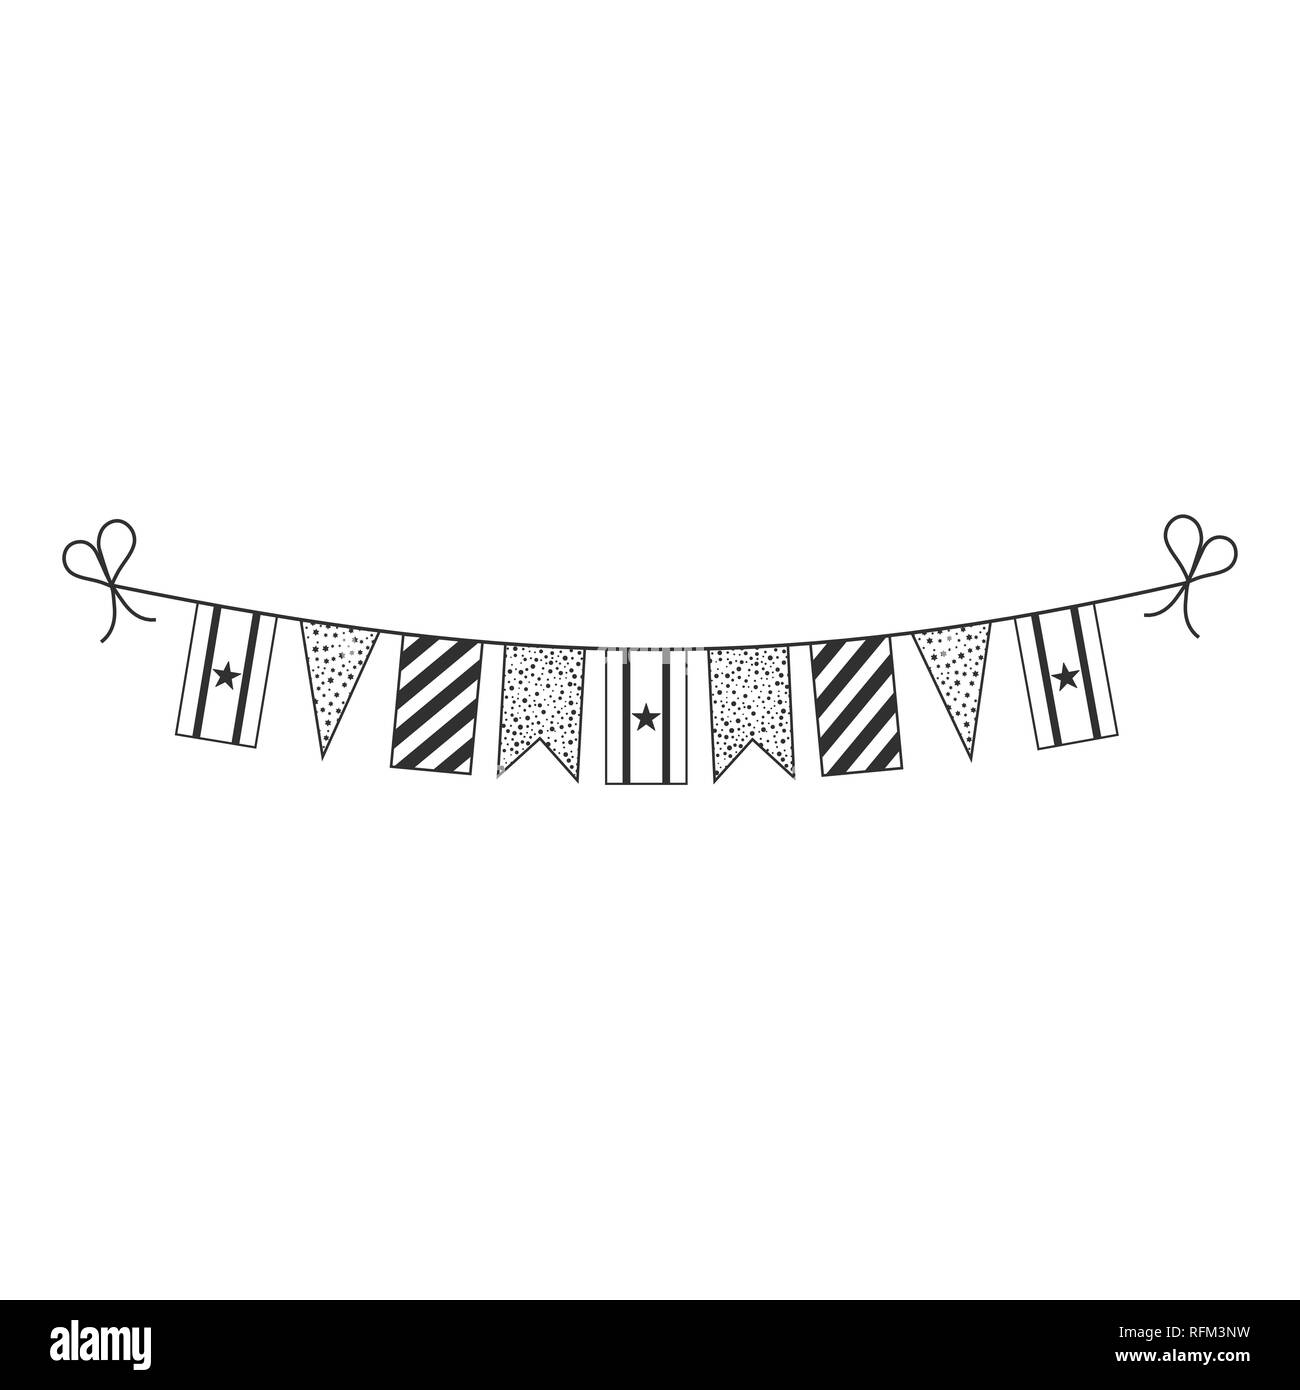 Decorations bunting flags for Suriname national day holiday in black outline flat design. Independence day or National day holiday concept. - Stock Image